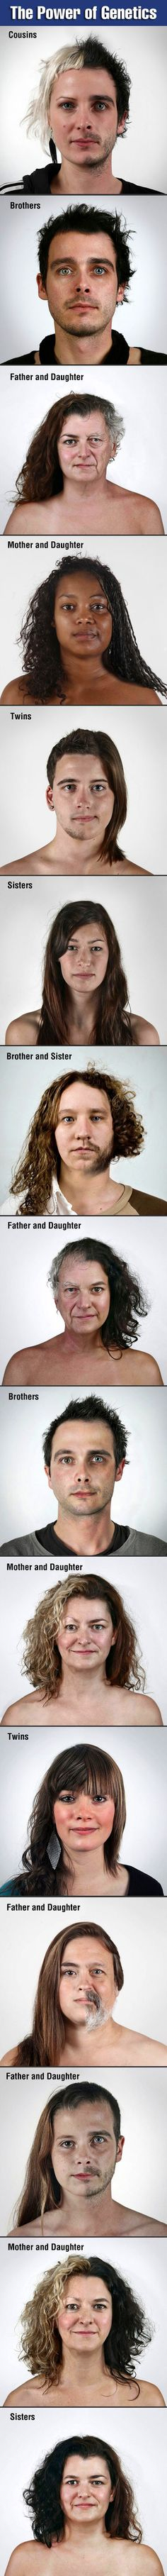 The power of genetics are shown in these awesome pictures.